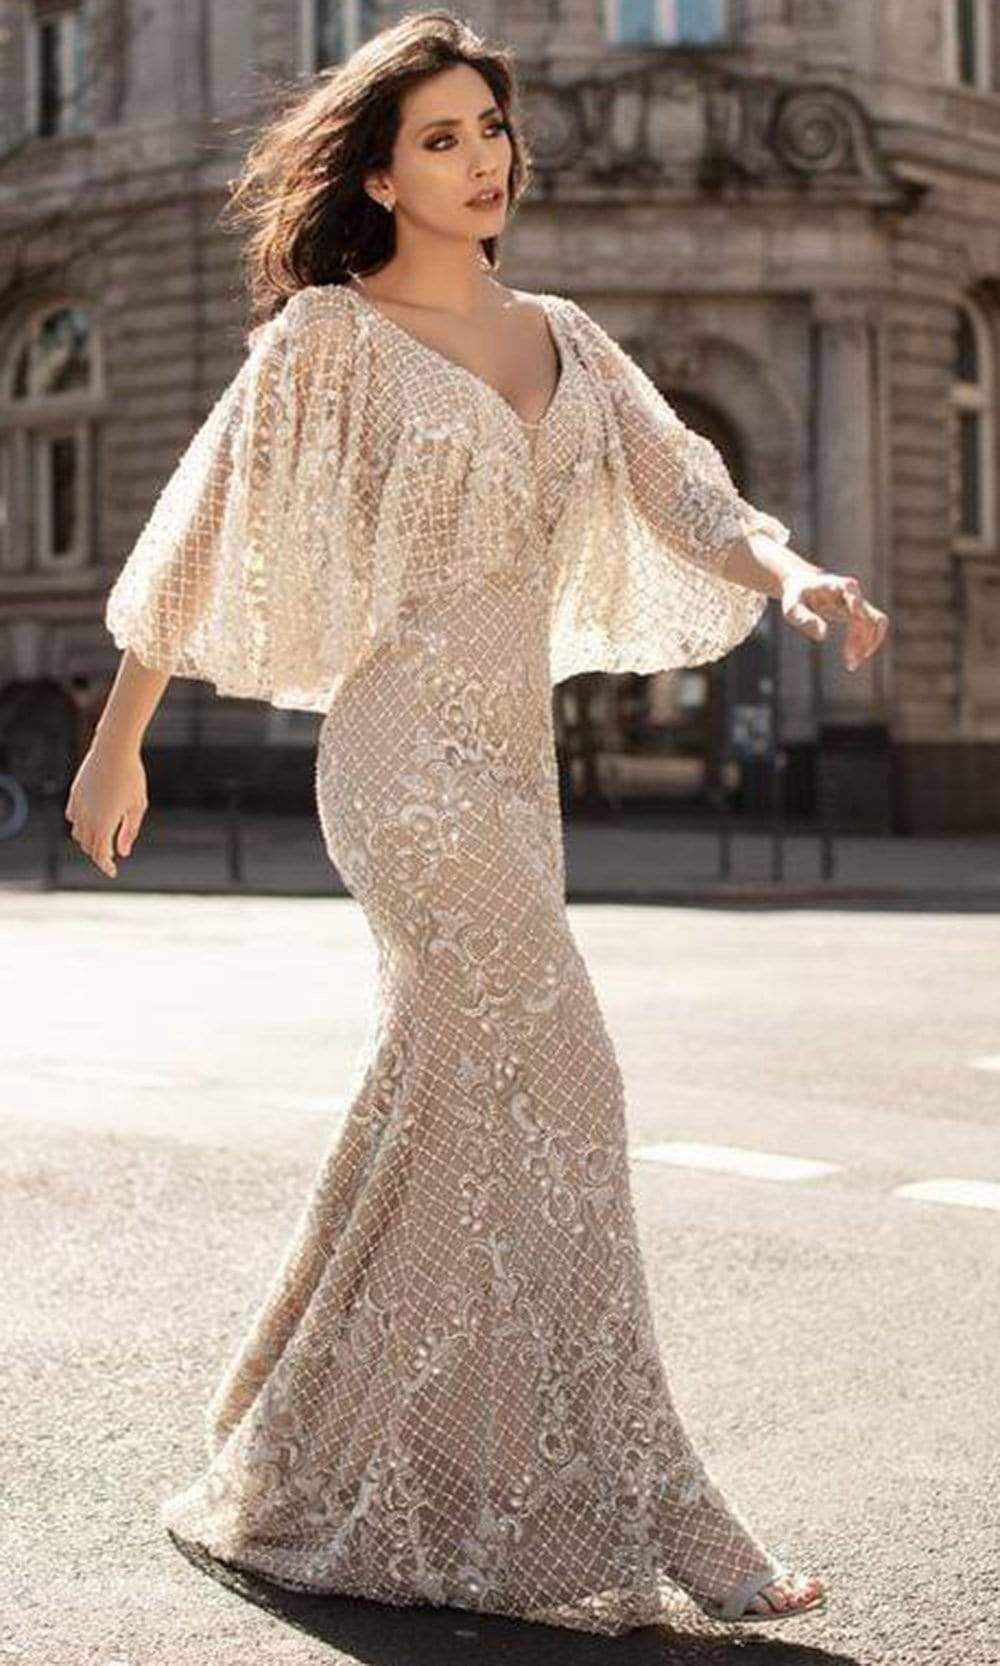 Chic and Holland - HF1611 Bell Sleeve Lattice Trumpet Gown from Chic and Holland